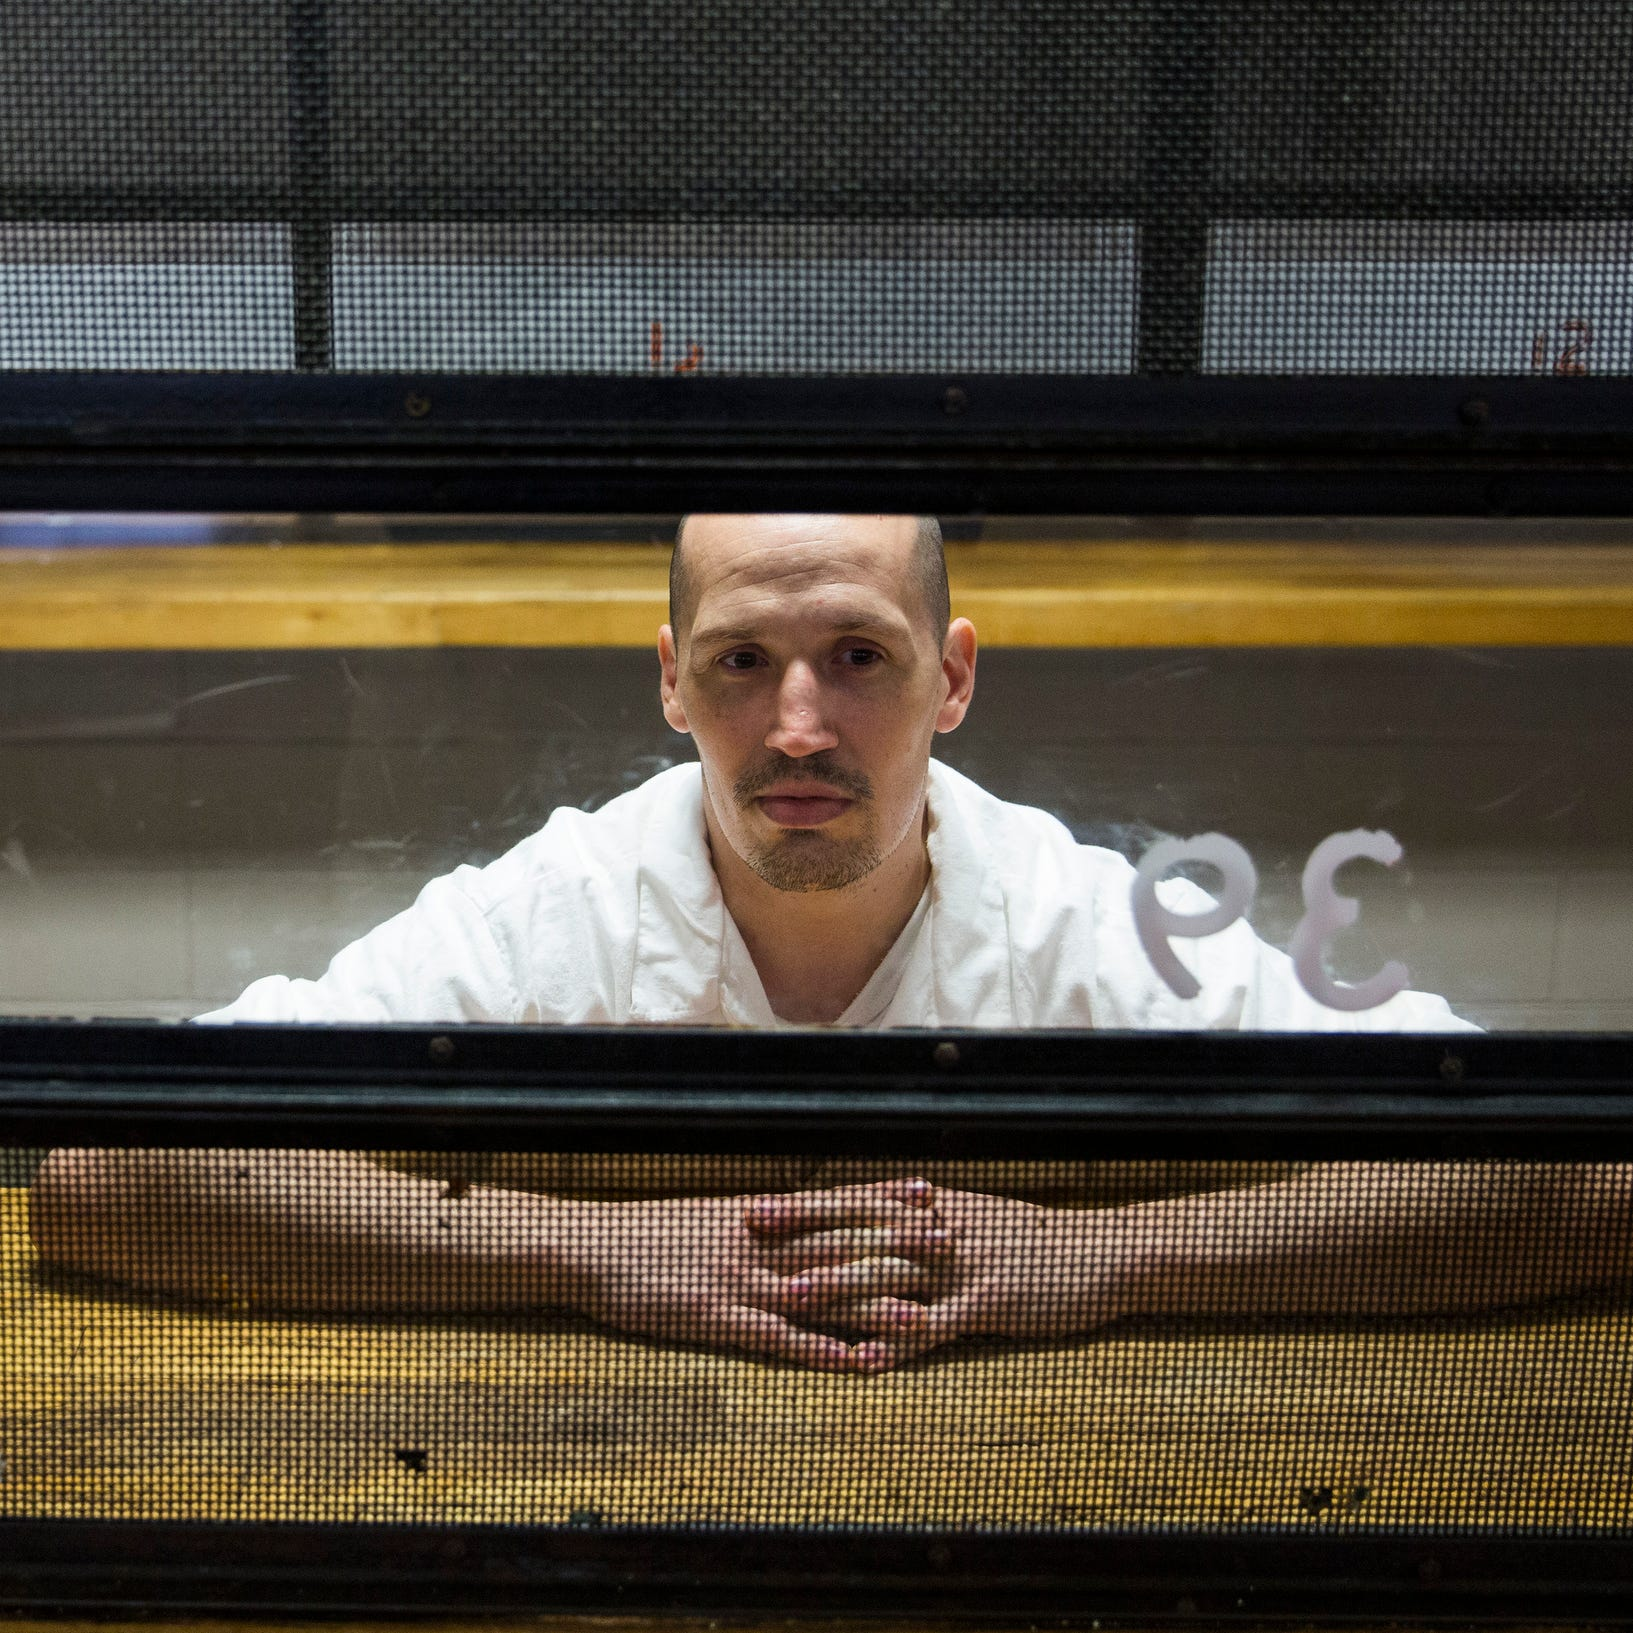 Going behind bars: How fantasy football works in prison